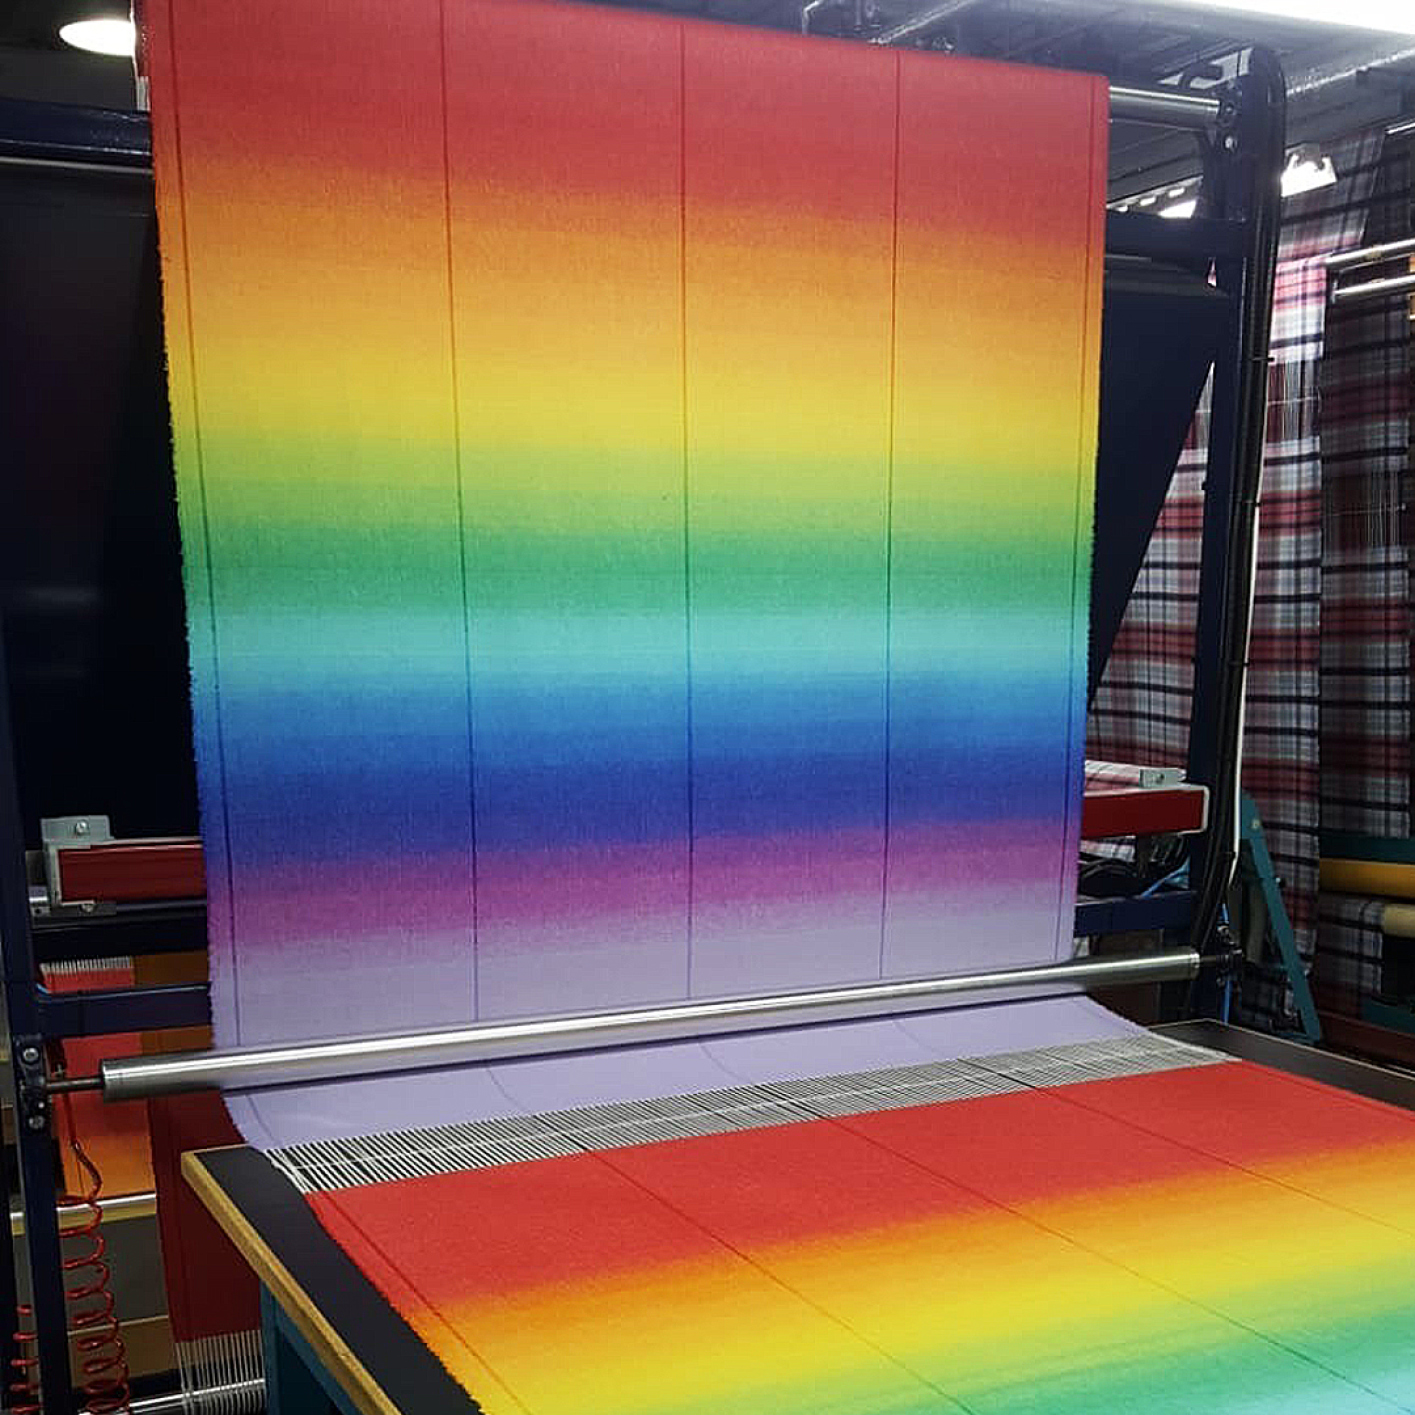 Johnstons of Elgin's Jacquard loom allows for fine ombre graduation of colours